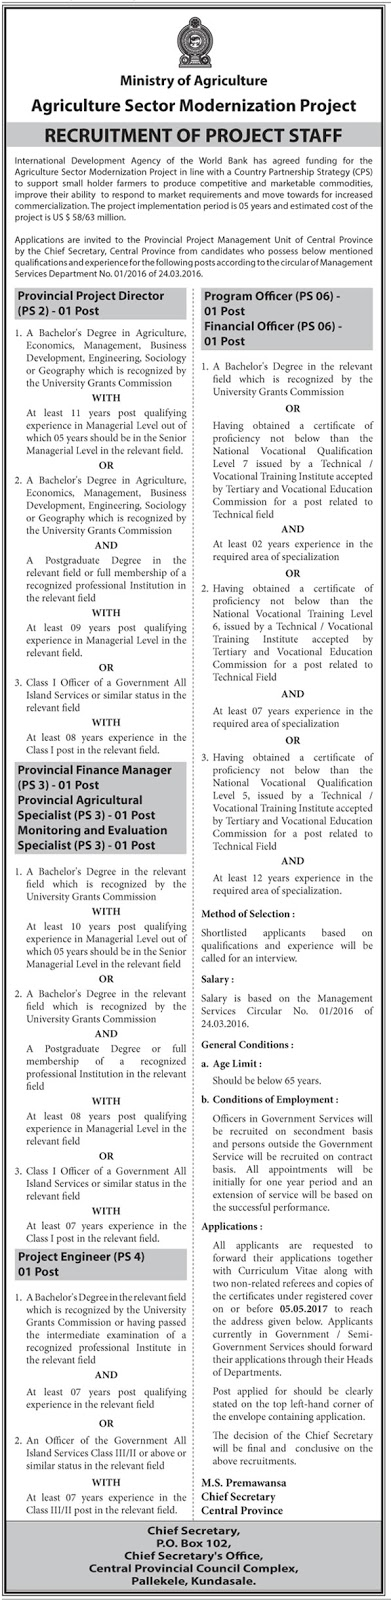 Sri Lankan Government Job Vacancies at Ministry of Agriculture for Provincial Project Director, Provincial Financial Manager, Provincial Agriculture Scientist, Monitoring & Evaluation Specialist, Project Engineer, Program Officer, Financial Officer